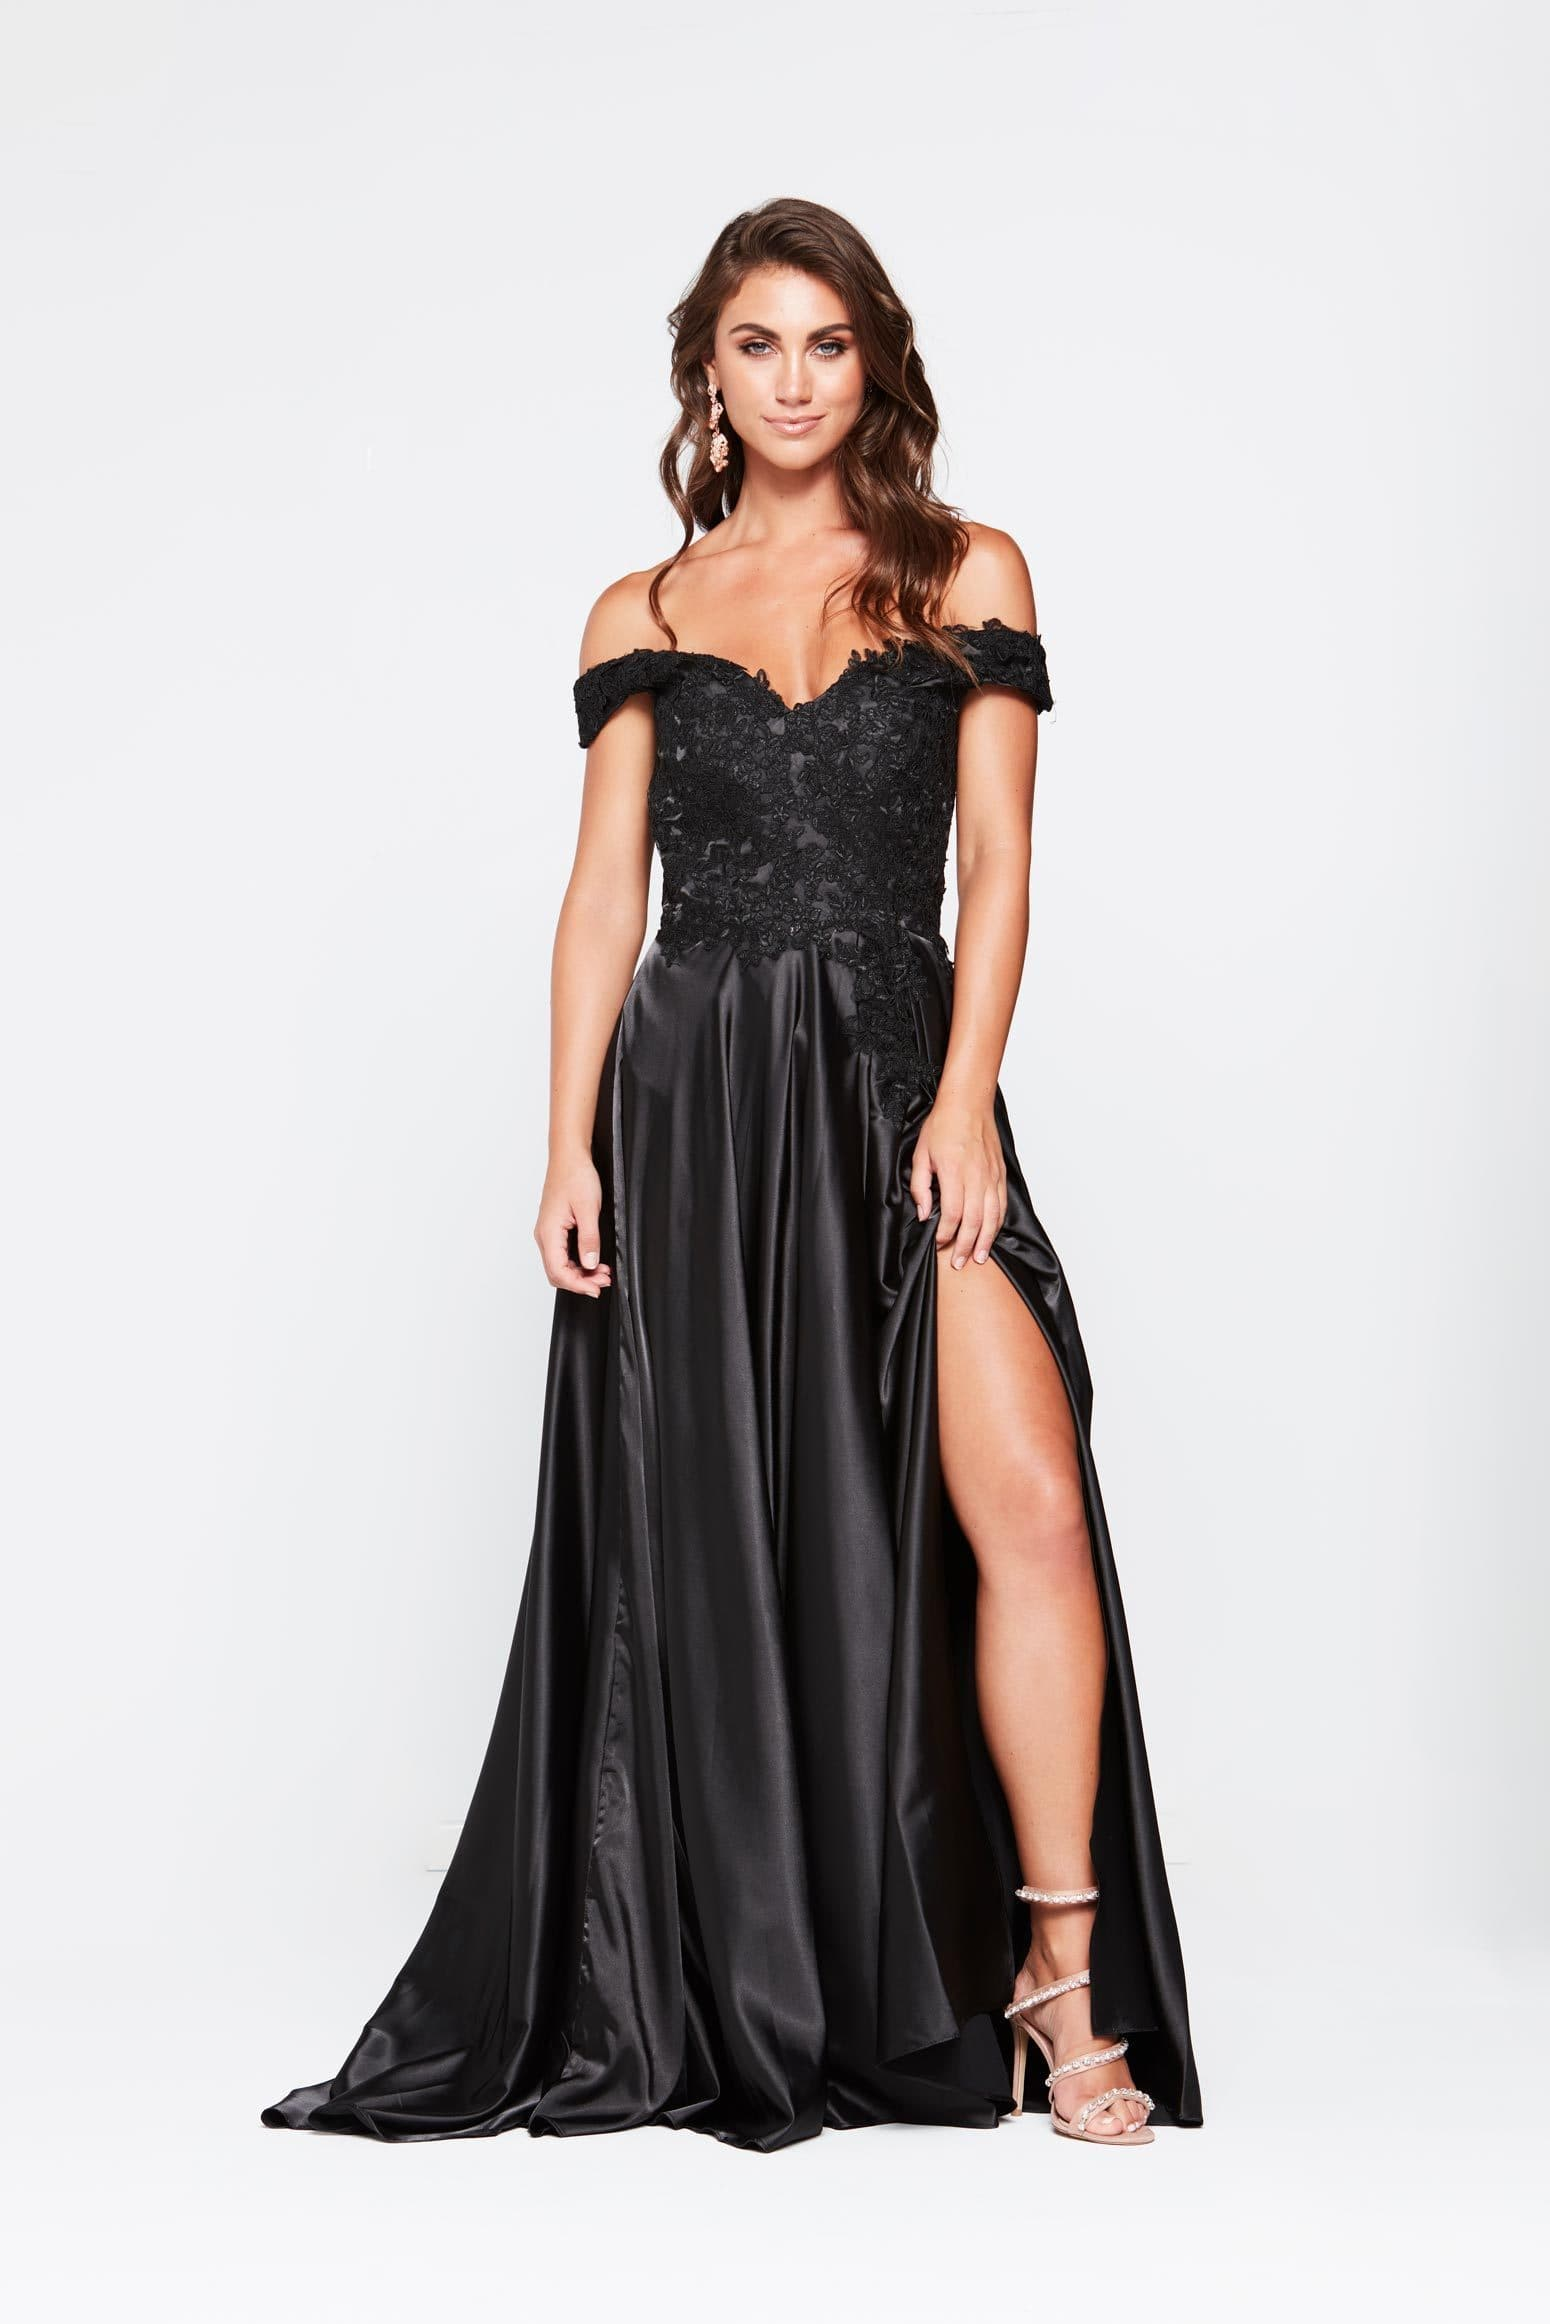 A&N Freya Dress - Black Off Shoulder Lace & Satin Gown with Front Slit